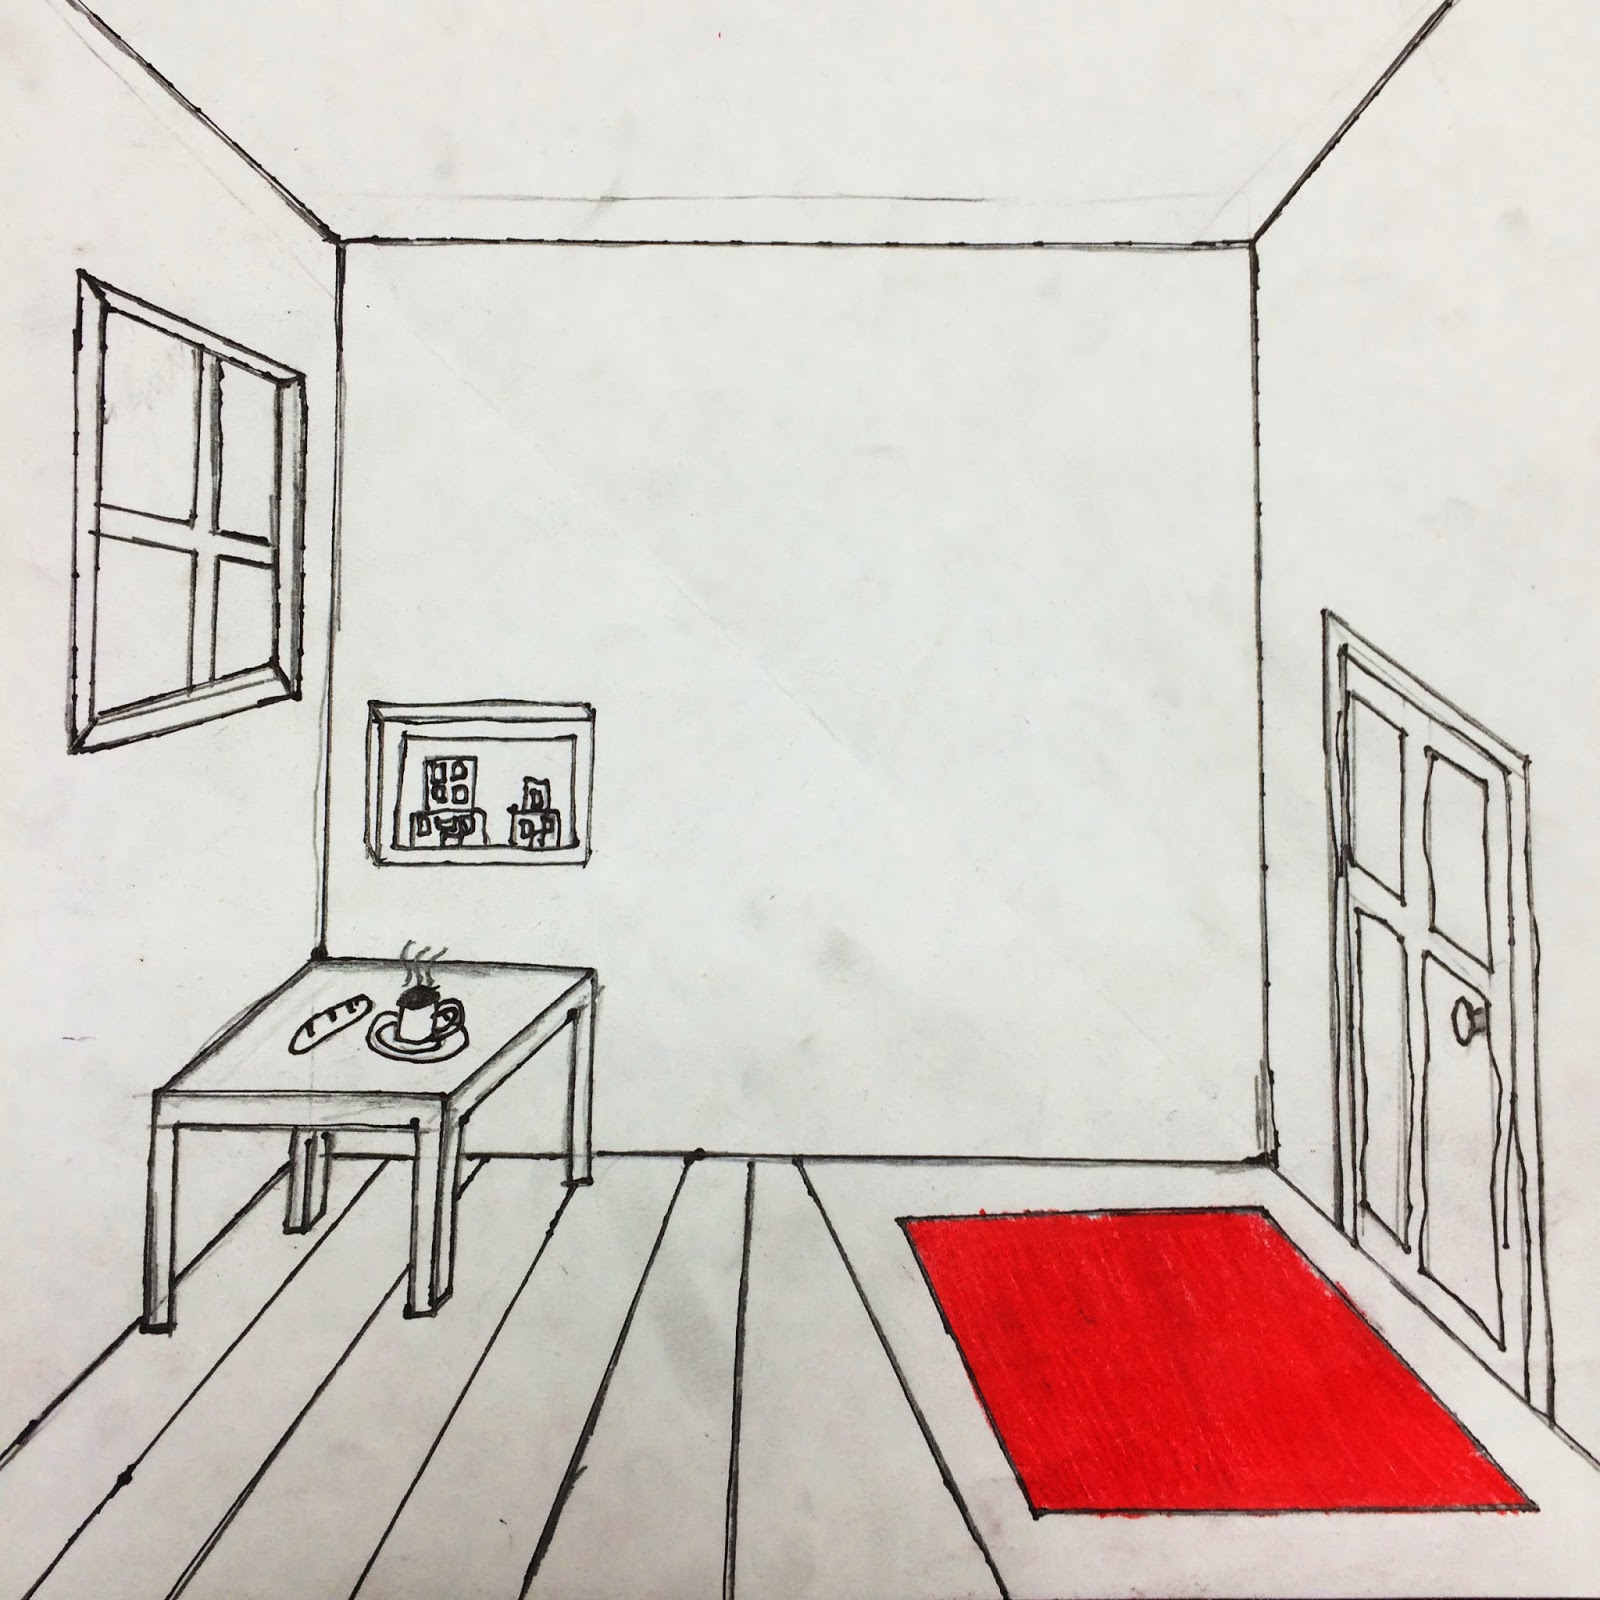 One Point Perspective Bedroom: Room Perspective Drawing At GetDrawings.com